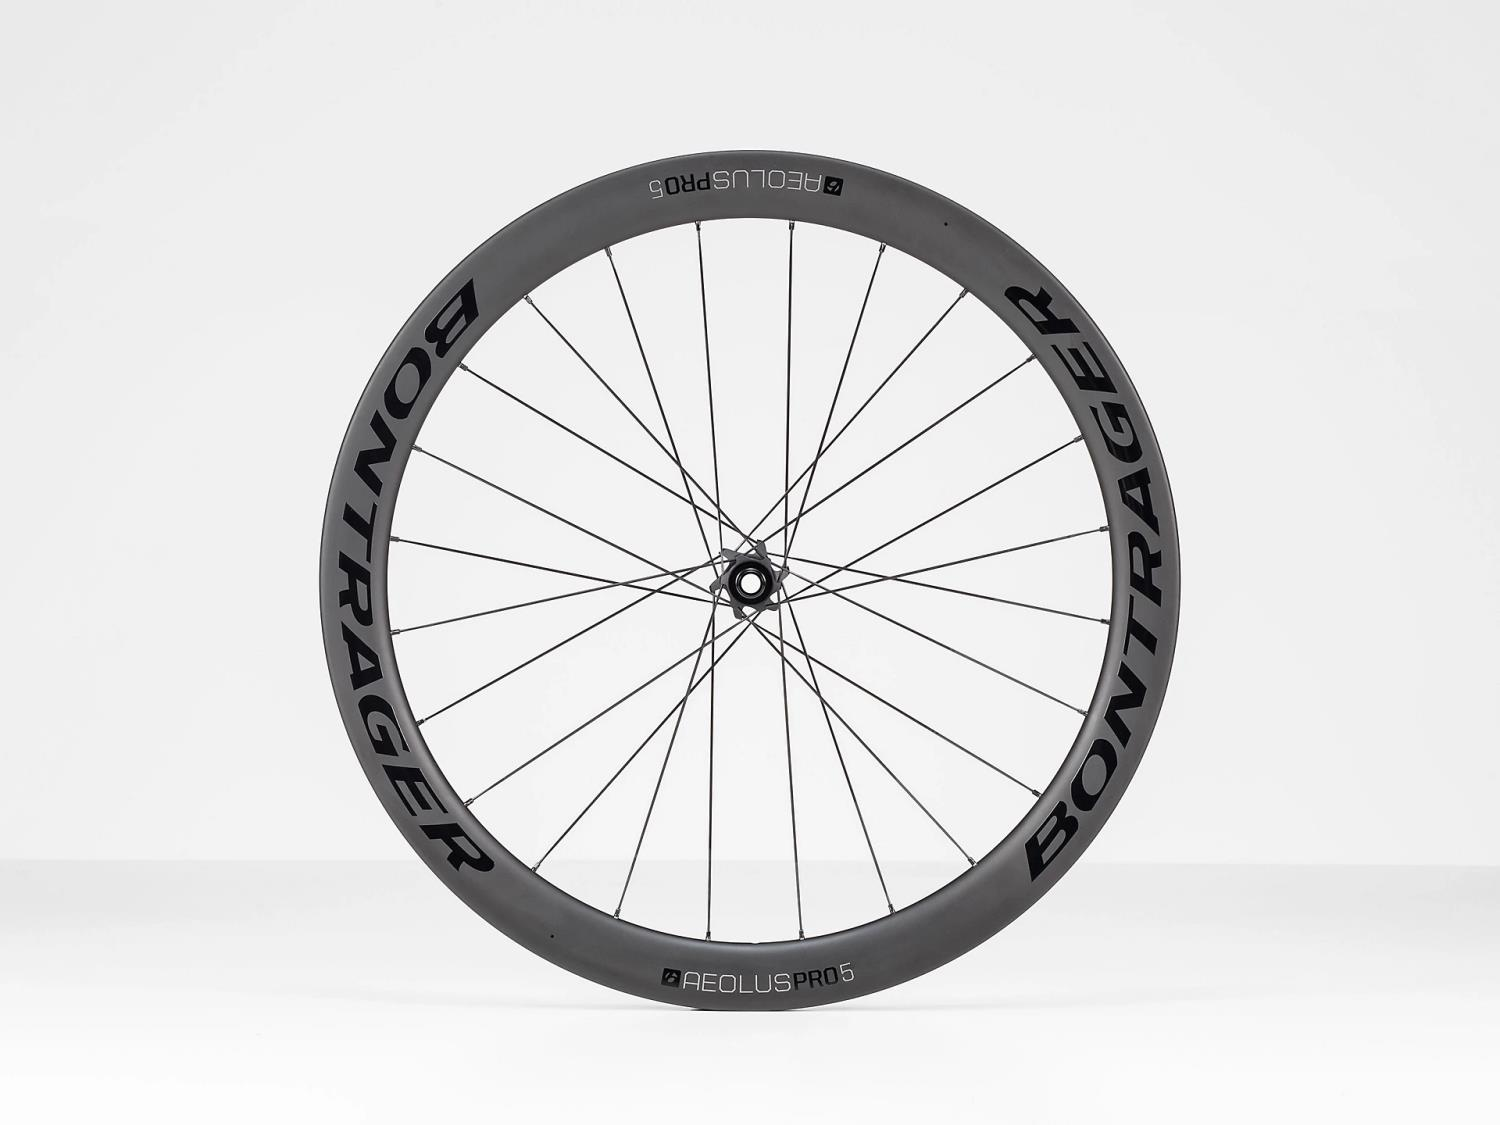 Bontrager Aeolus Pro 5 TLR Disc Road Wheel